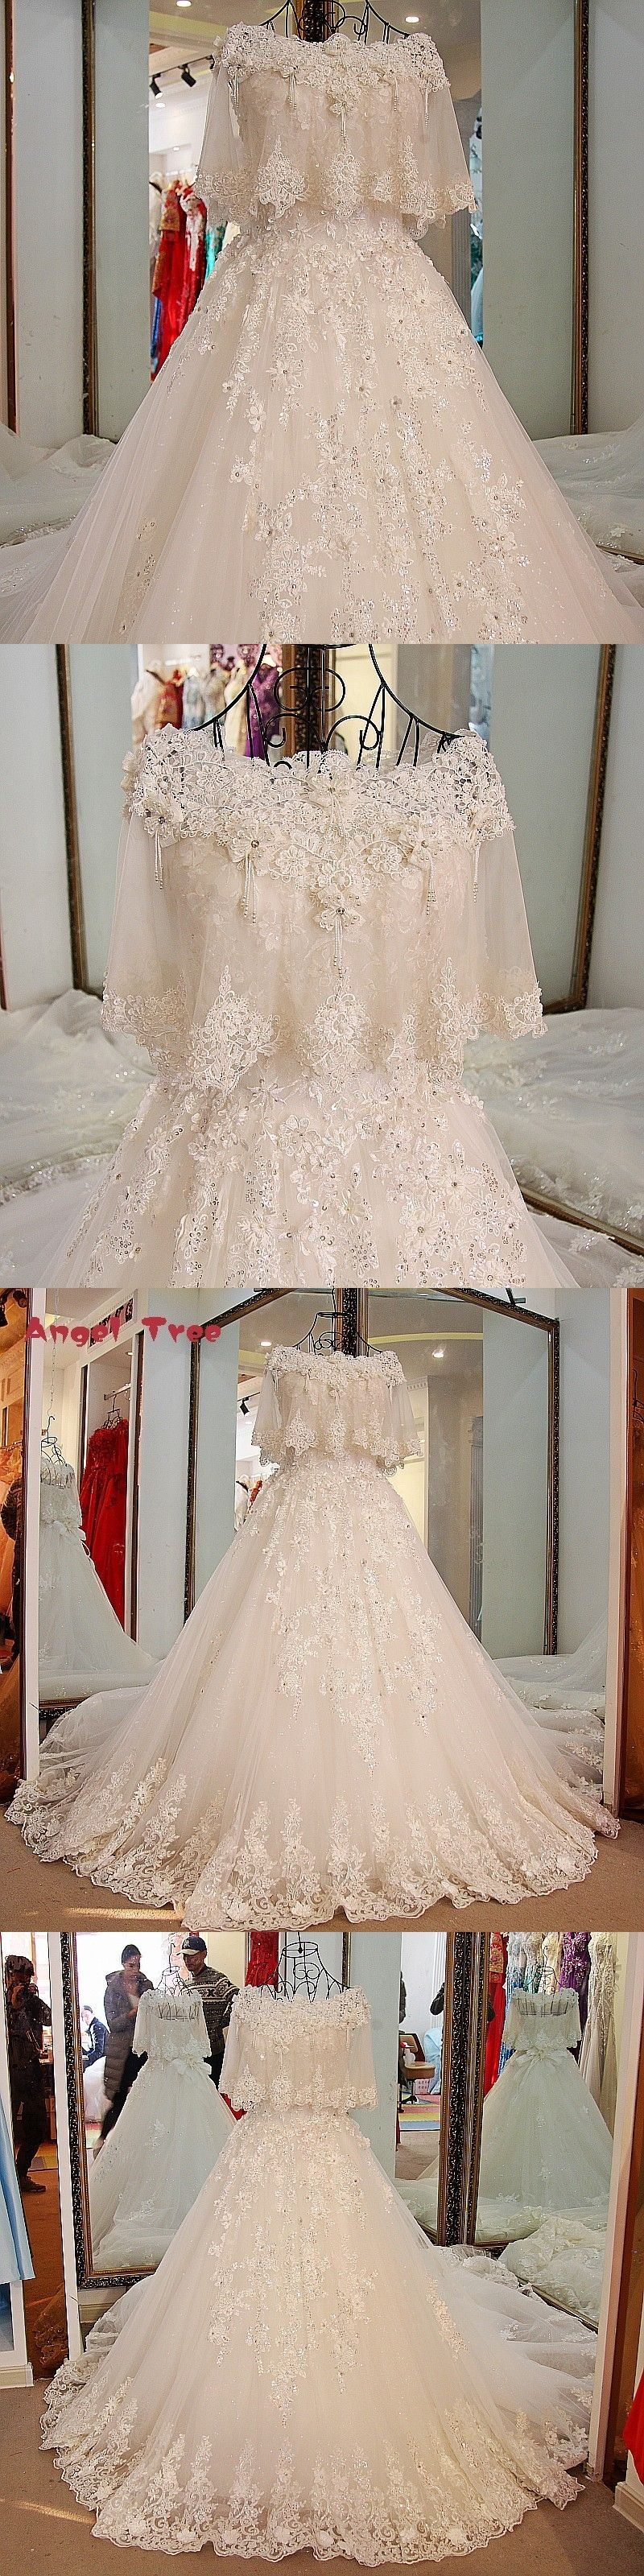 Angel tree modest bridal wedding dress lace ball gown corst dress